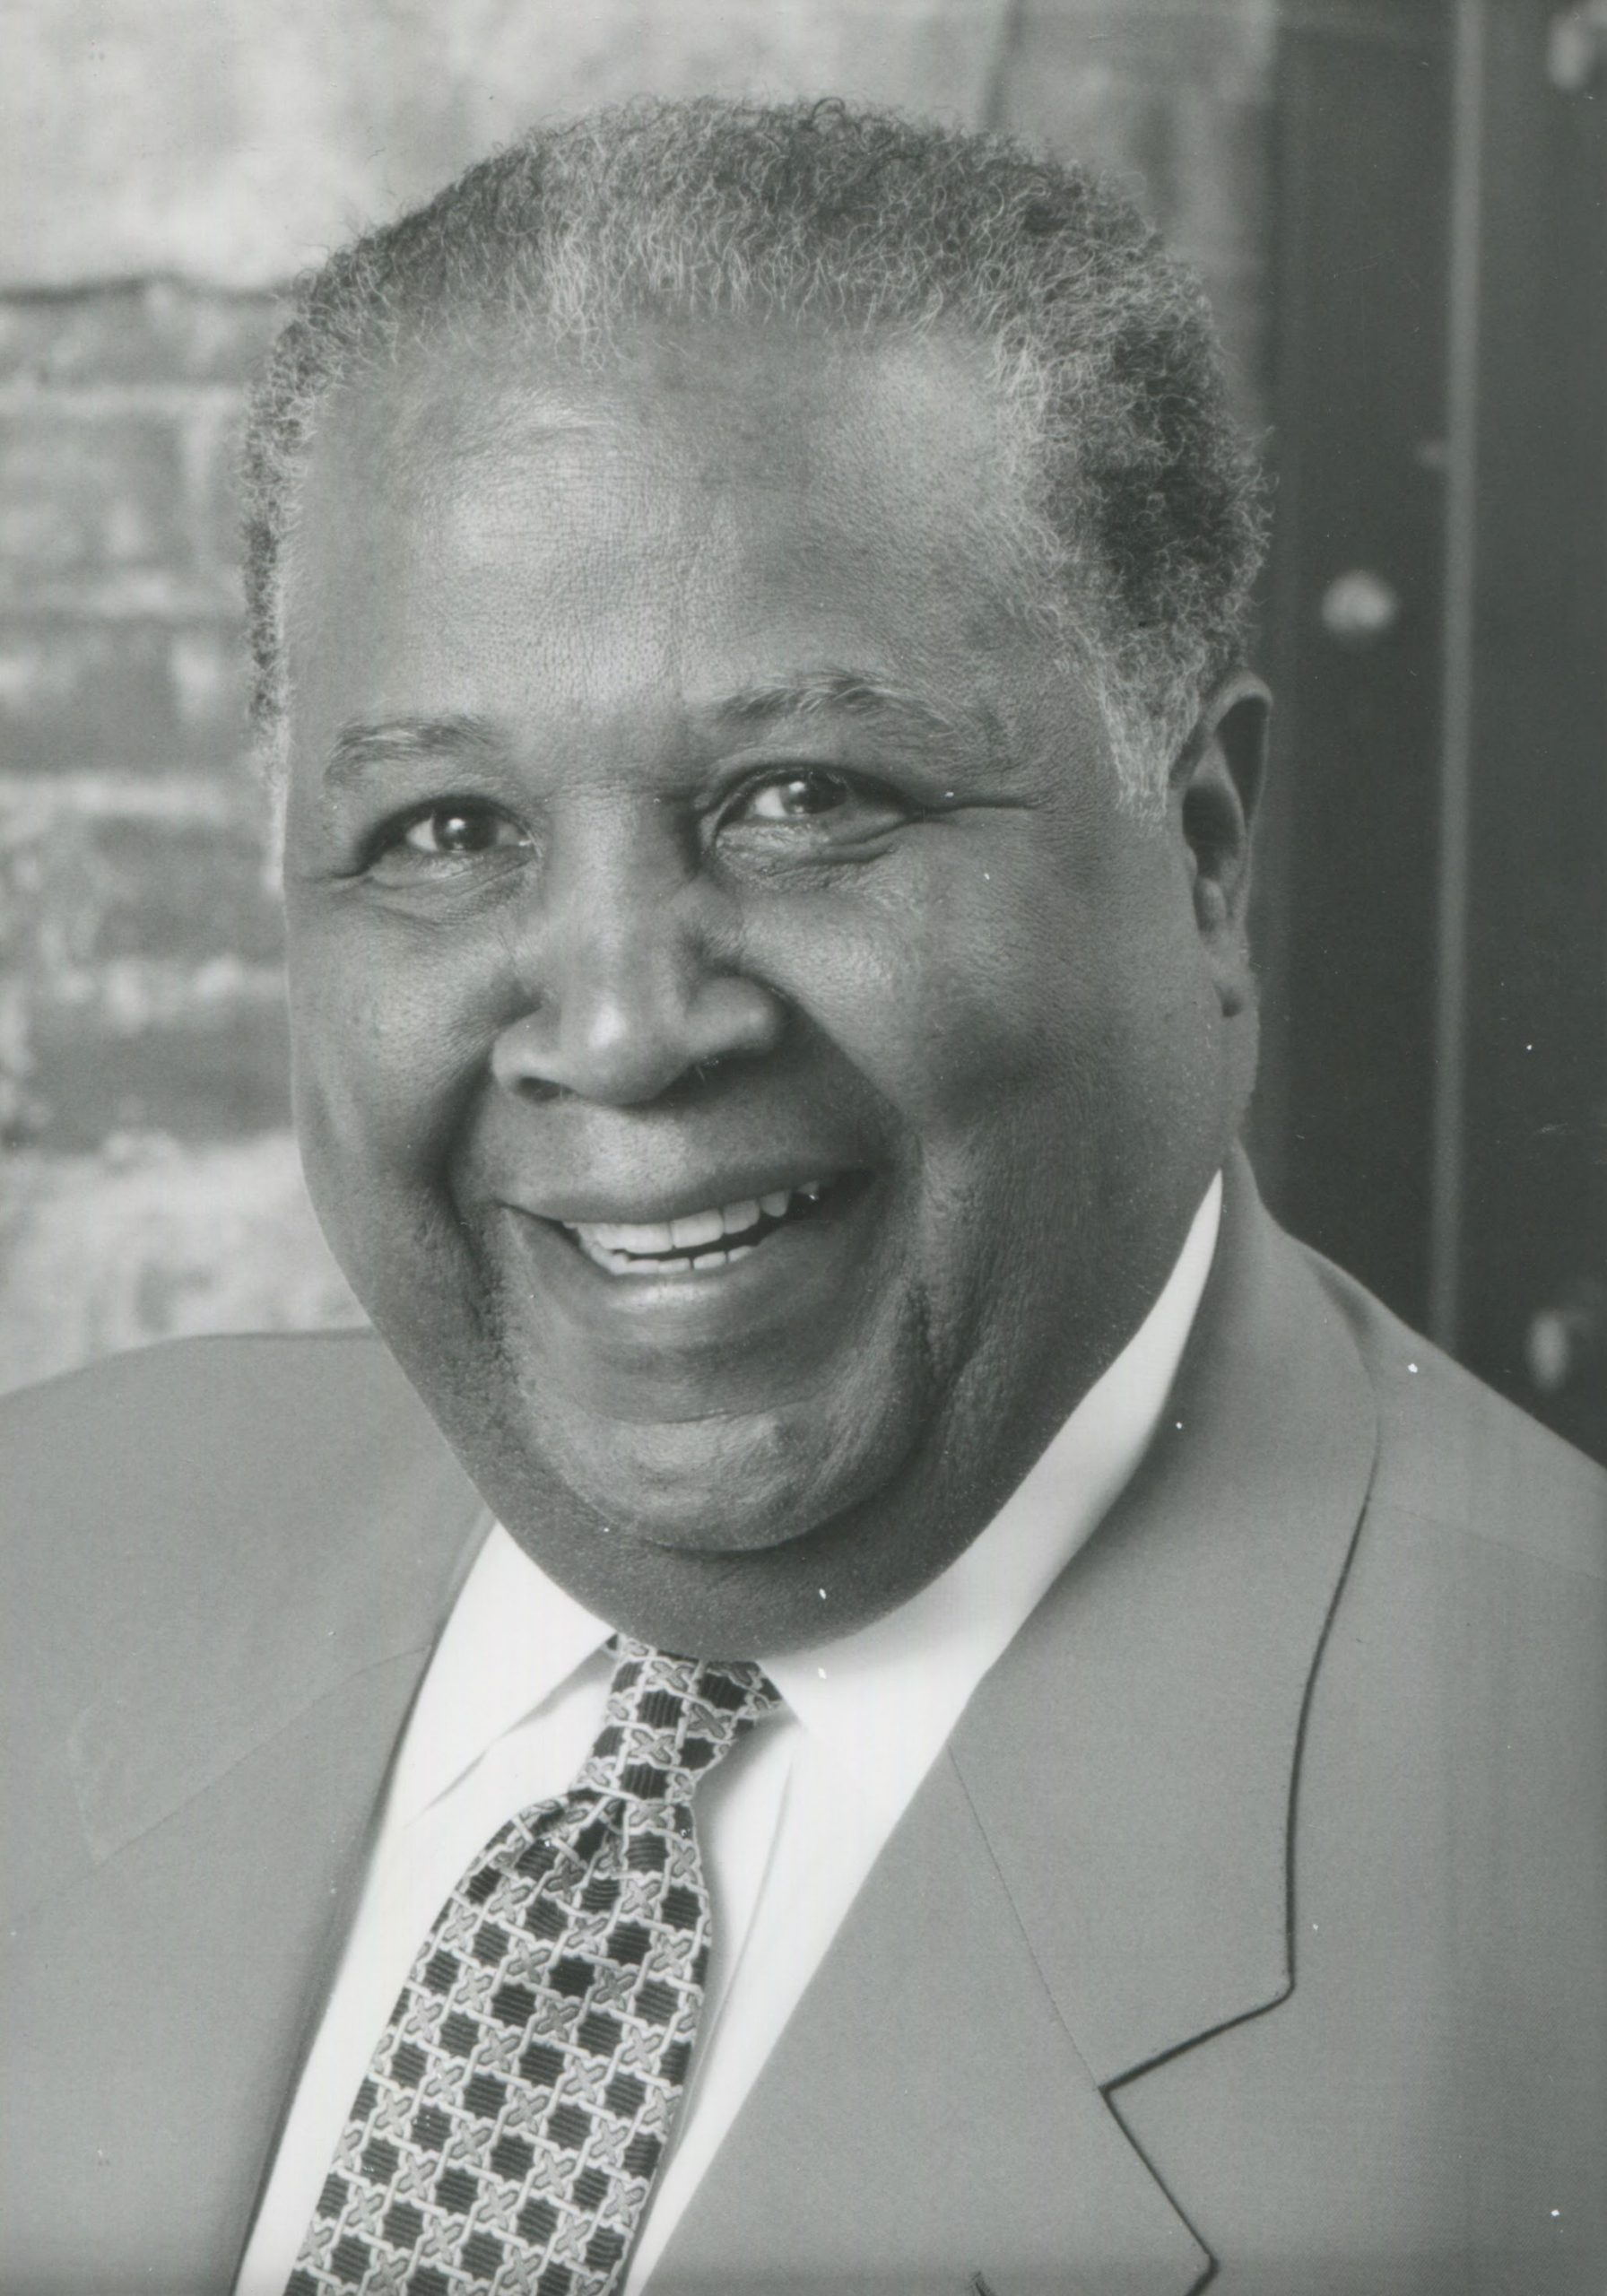 Russell M. Perry